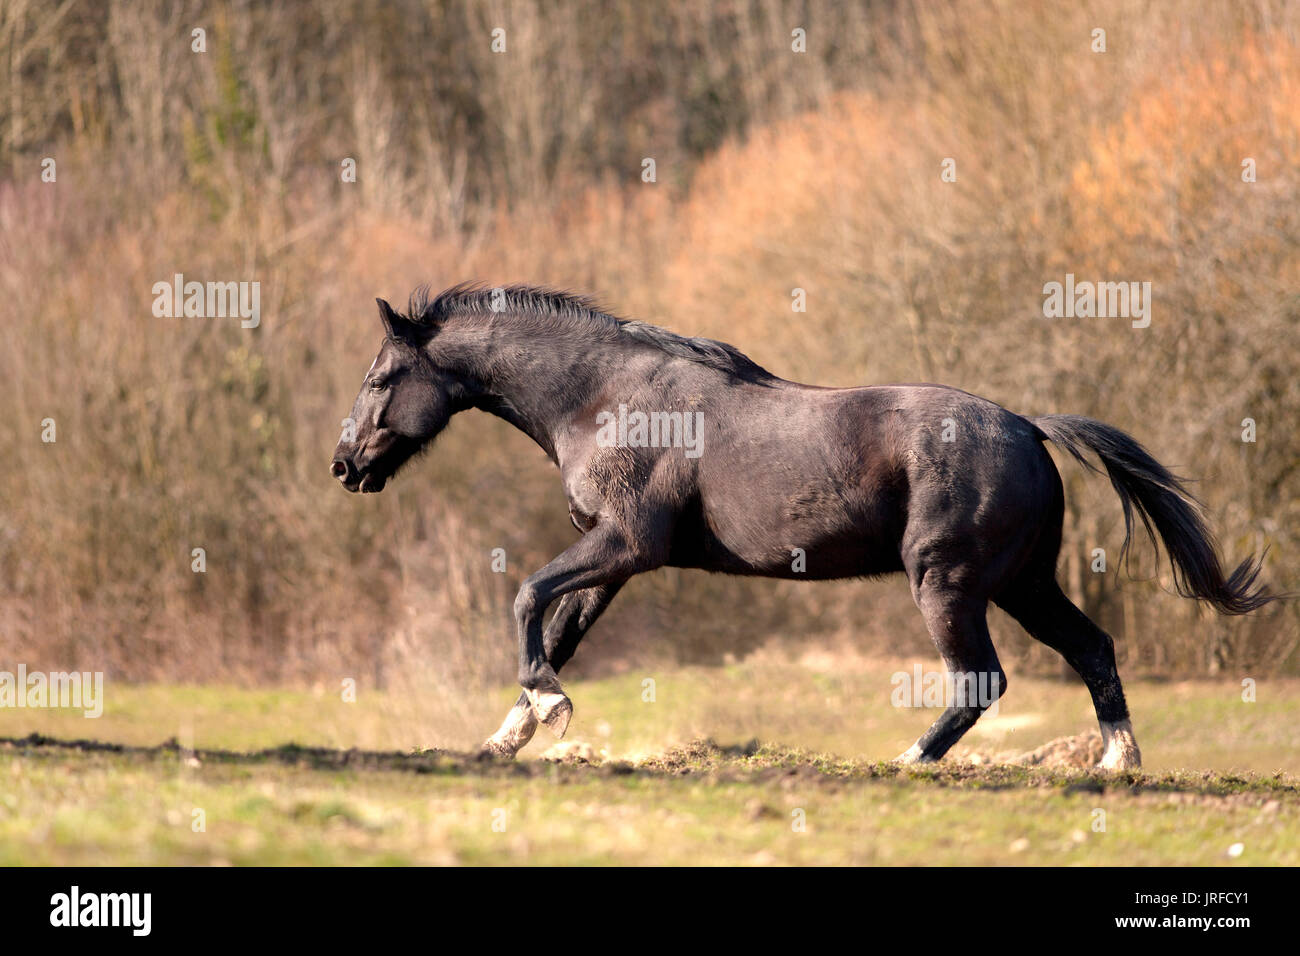 Black stallion horse run free and galopping powerful in madow - Stock Image